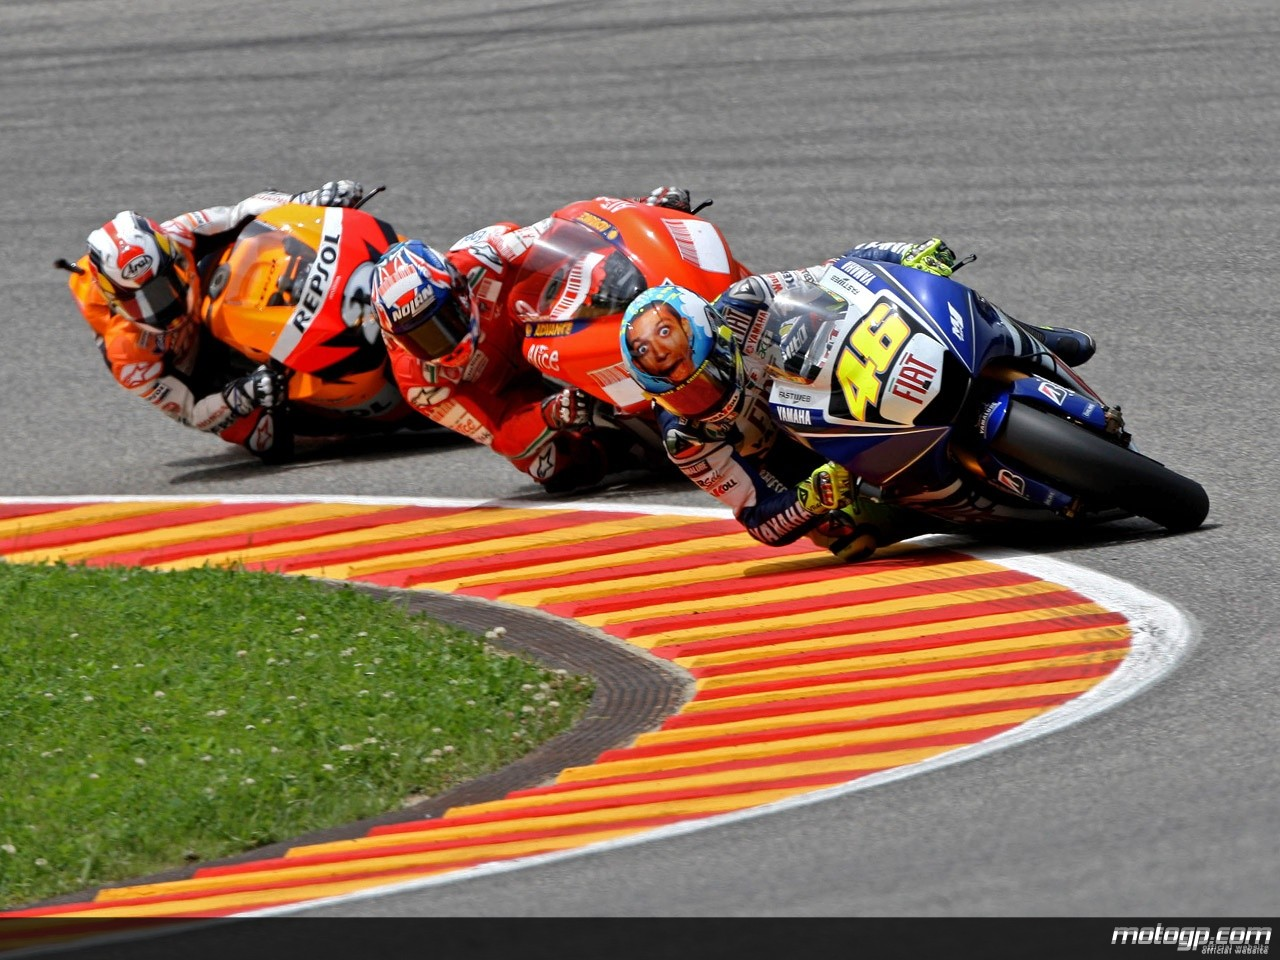 223627 rossi+stoner+and+pedrosa+in+action+in+mugello+motogp-1280x960-jun1 jpg original.jpg